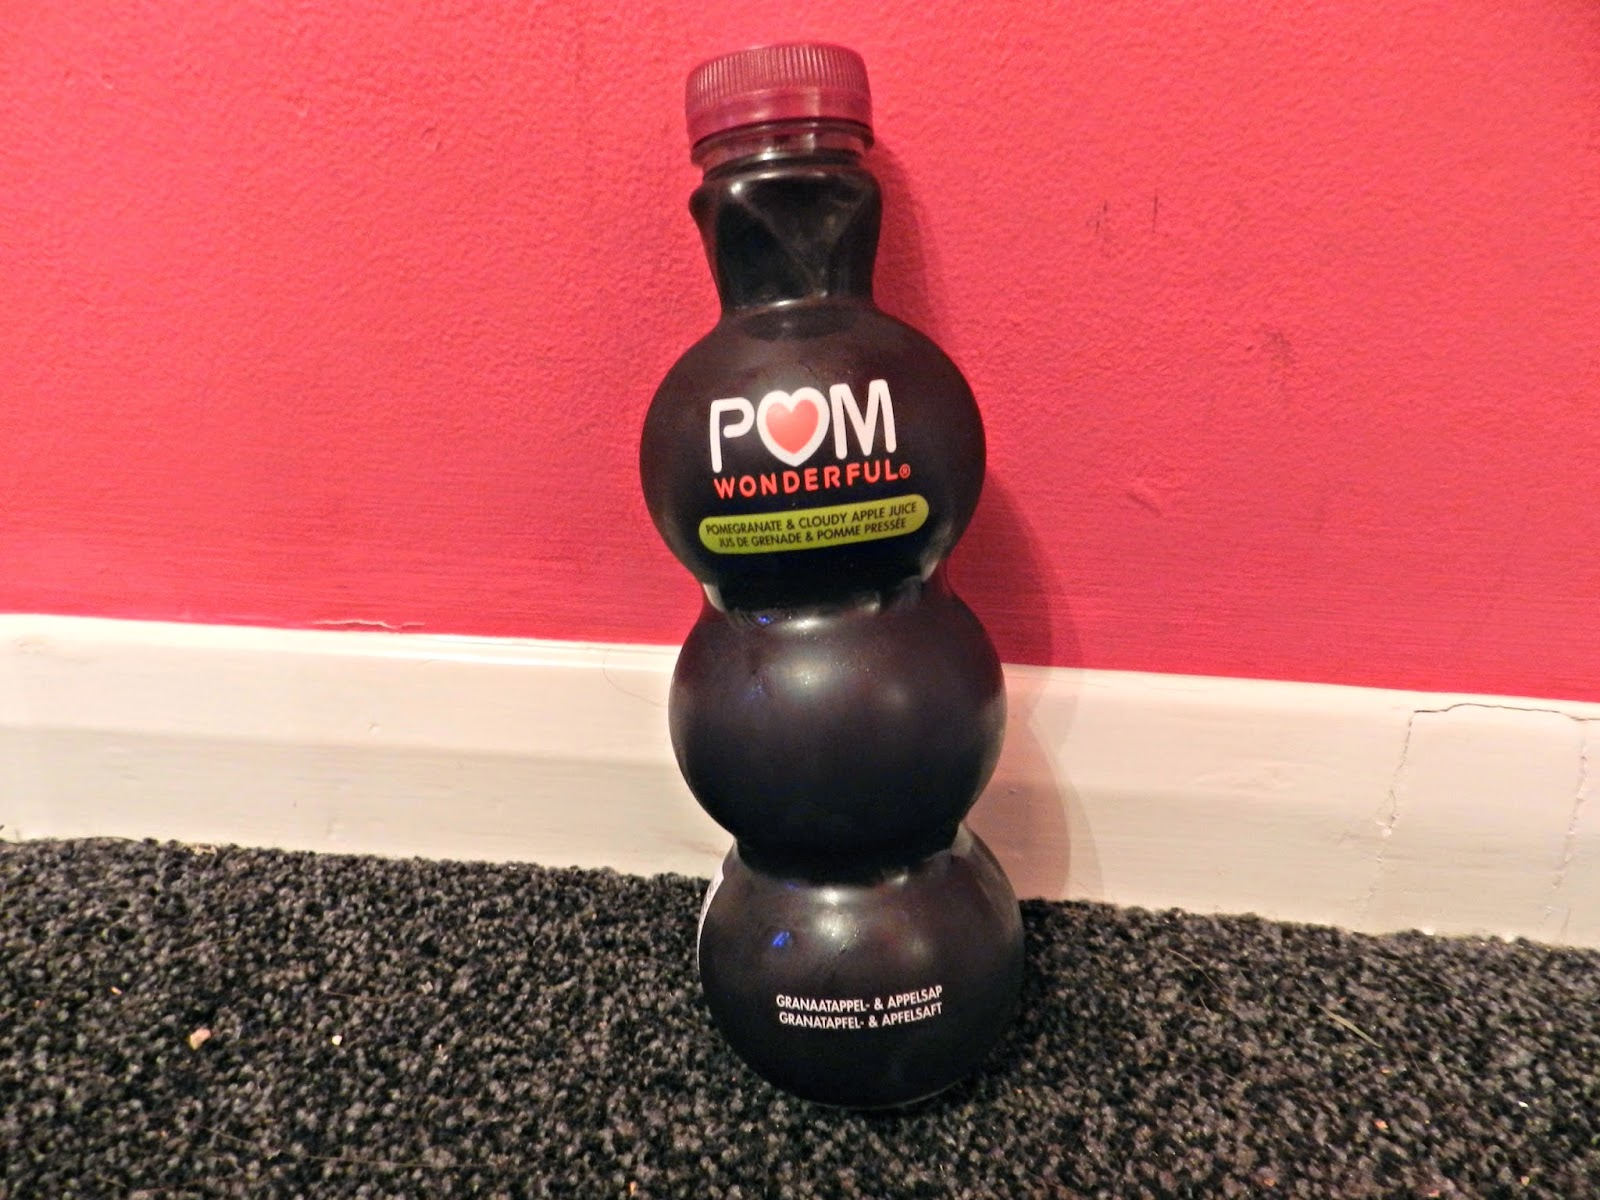 Pom Wonderful Juice